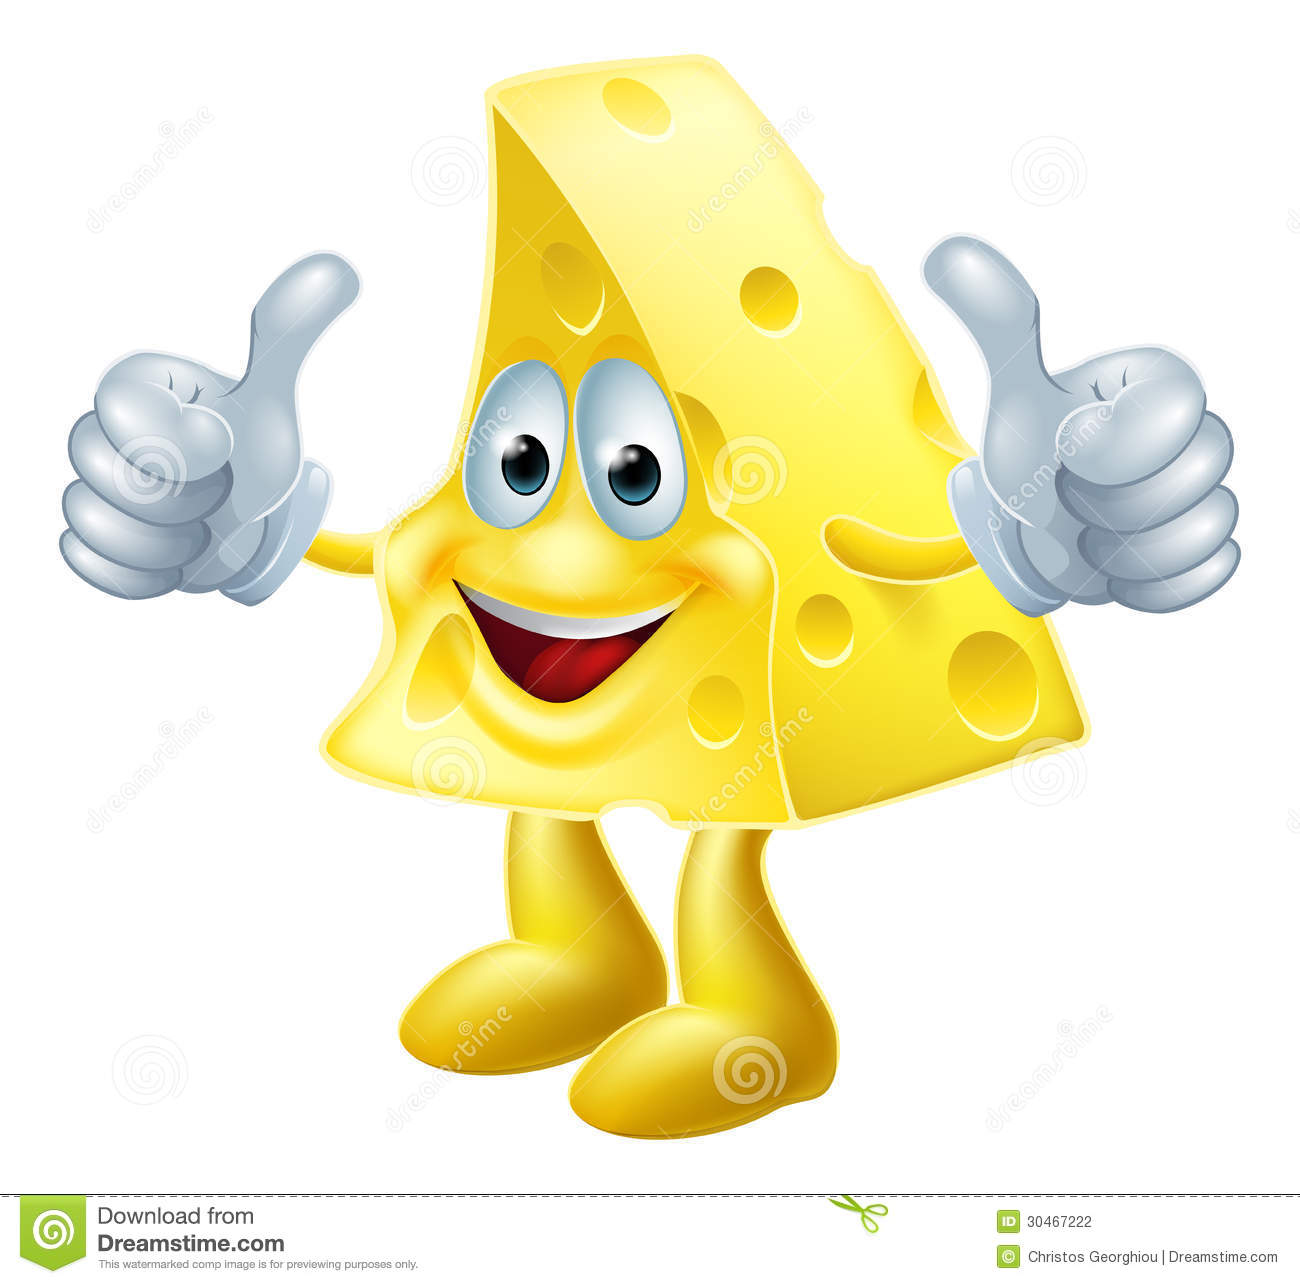 happy-cartoon-cheese-man-drawing-giving-double-thumbs-up-30467222.jpg